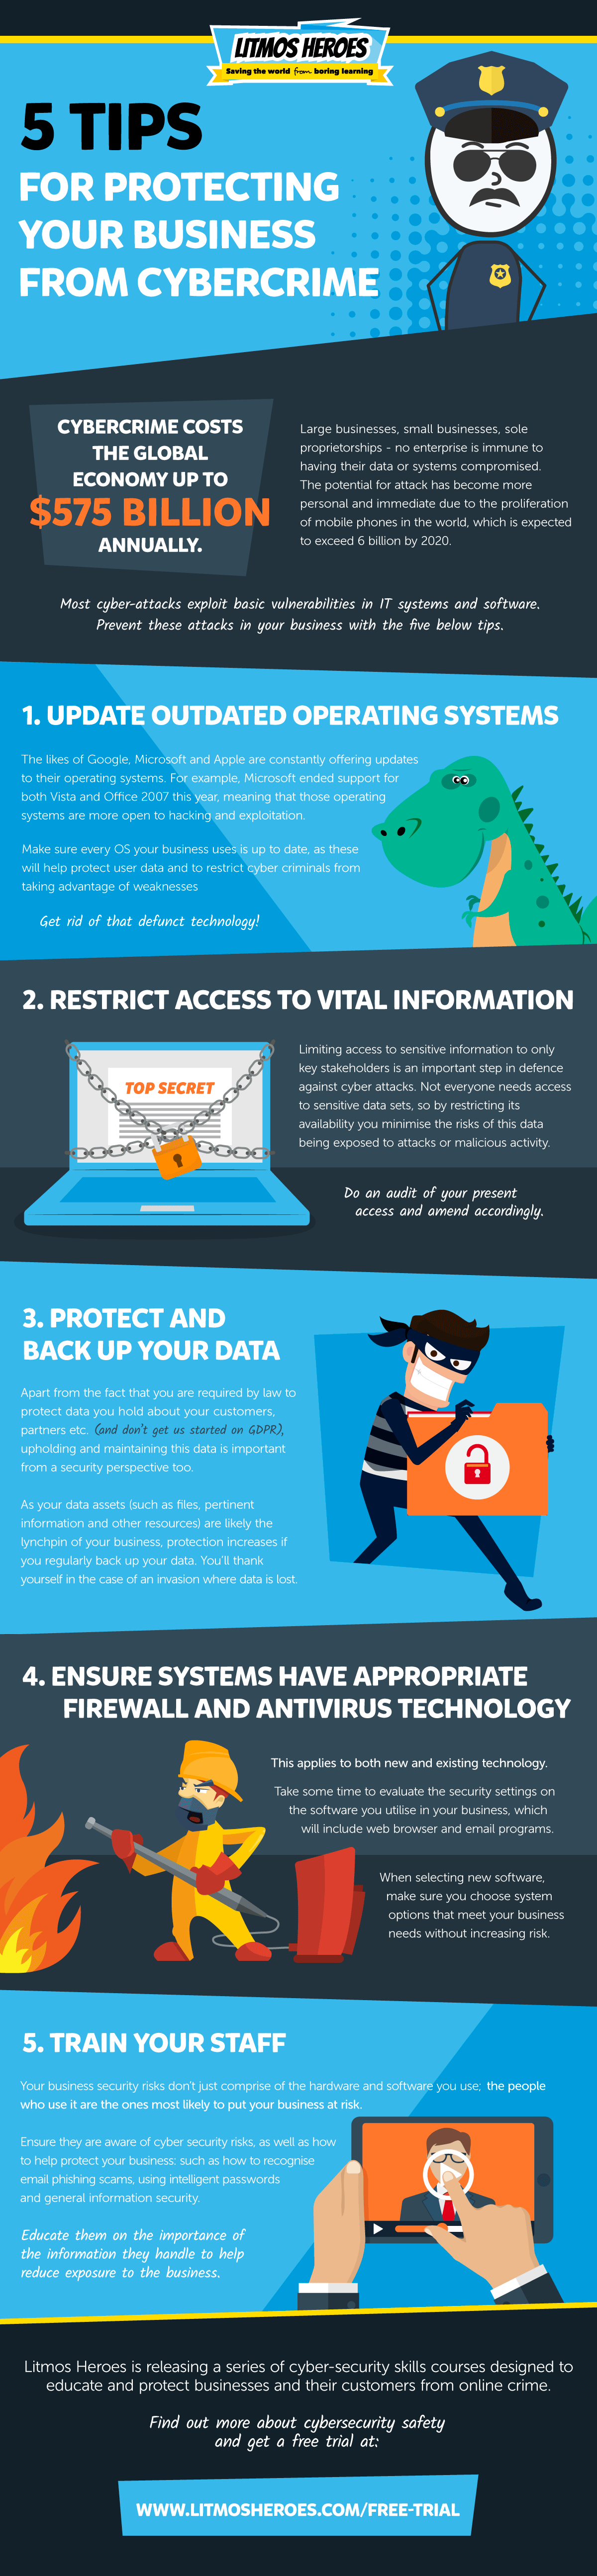 cyber crime protection tips